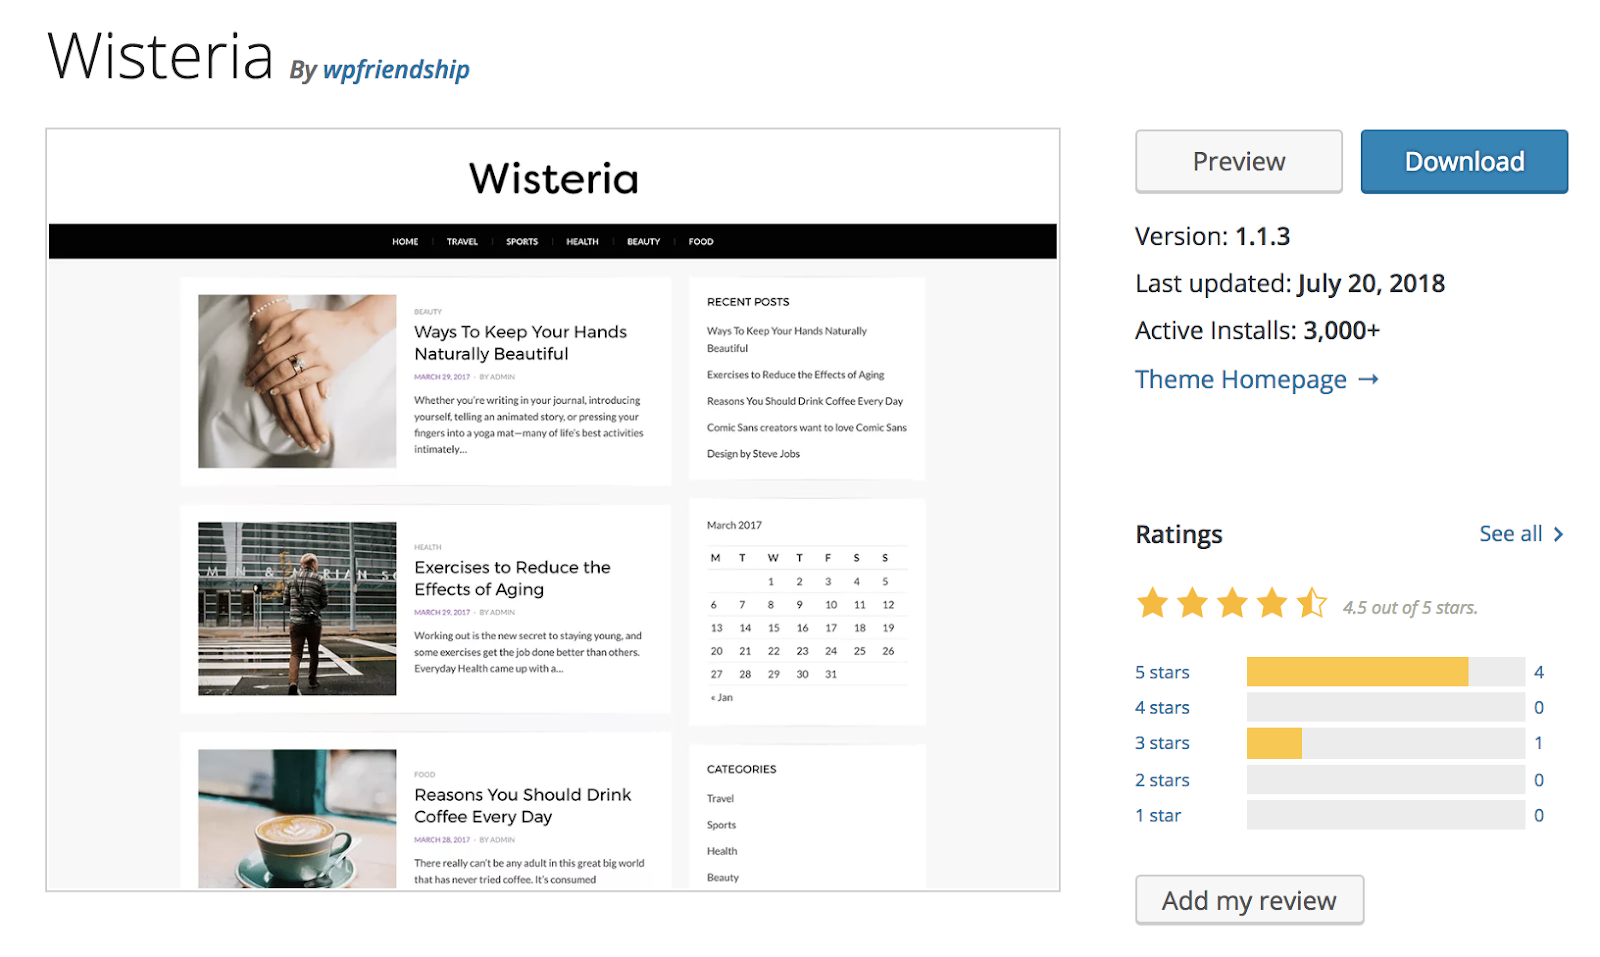 wisteria-wordpress-theme